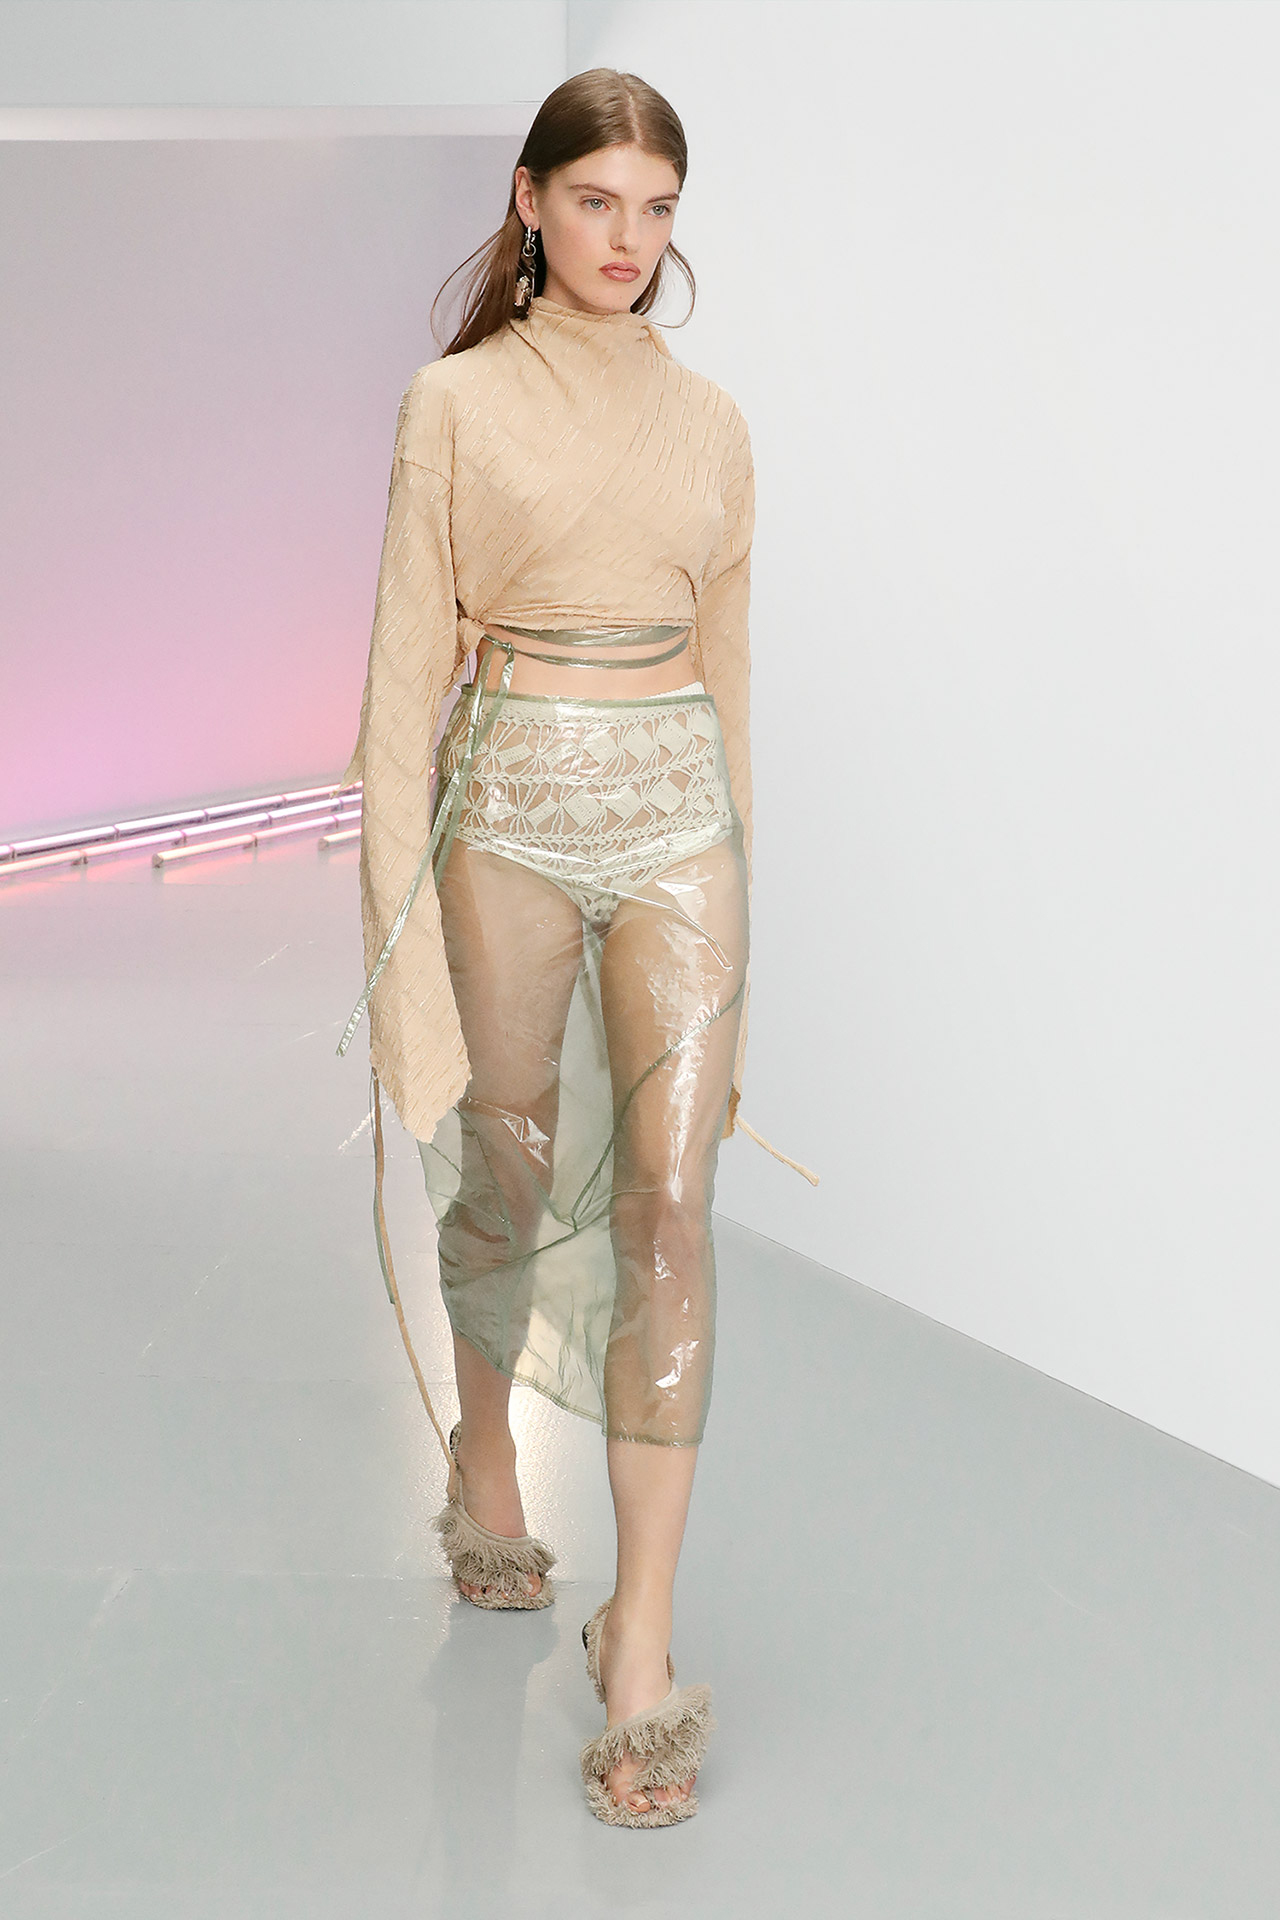 LOOK 3 ACNE STUDIOS SS 2021 COLLECTION